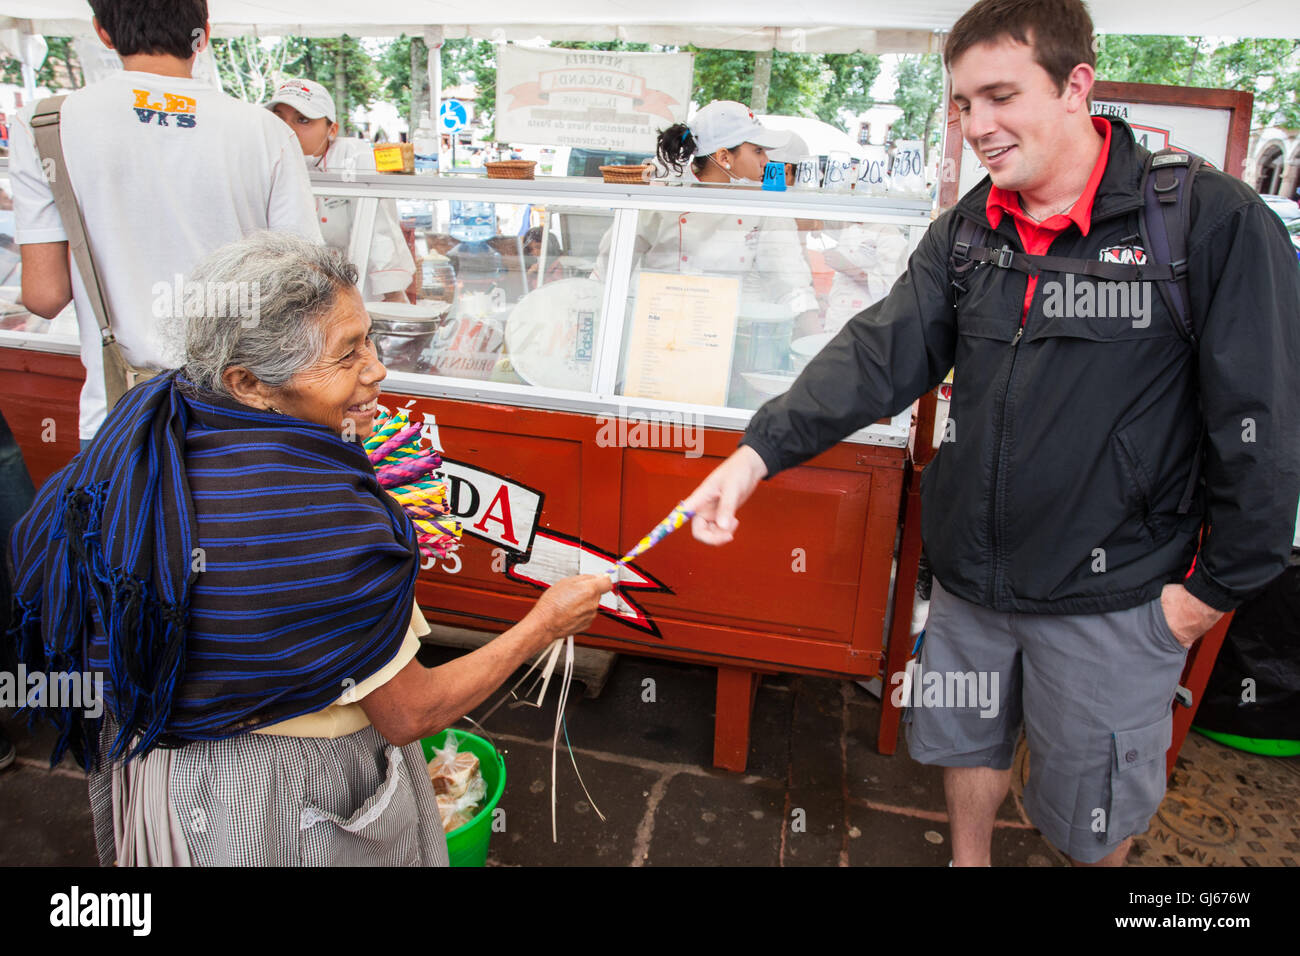 A Purepecha saleswoman demonstrates the use of the atrapa novios (boyfriend catchers) she is selling in Patzcuaro, - Stock Image